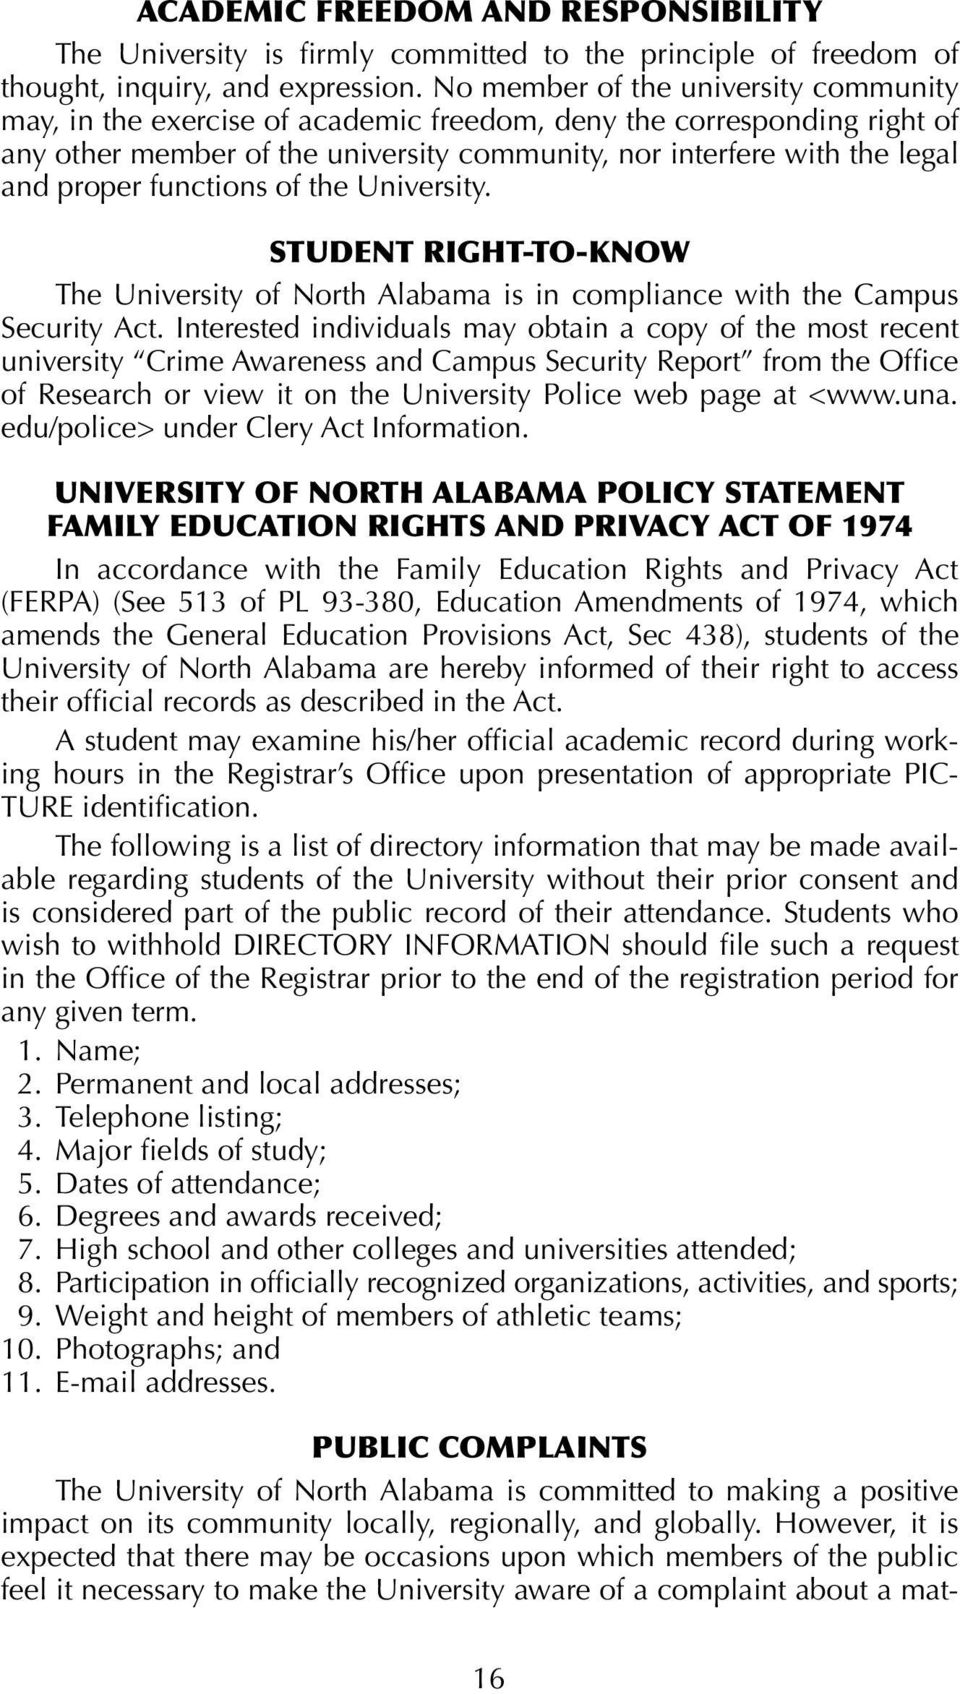 functions of the University. STUDENT RIGHT-TO-KNOW The University of North Alabama is in compliance with the Campus Security Act.